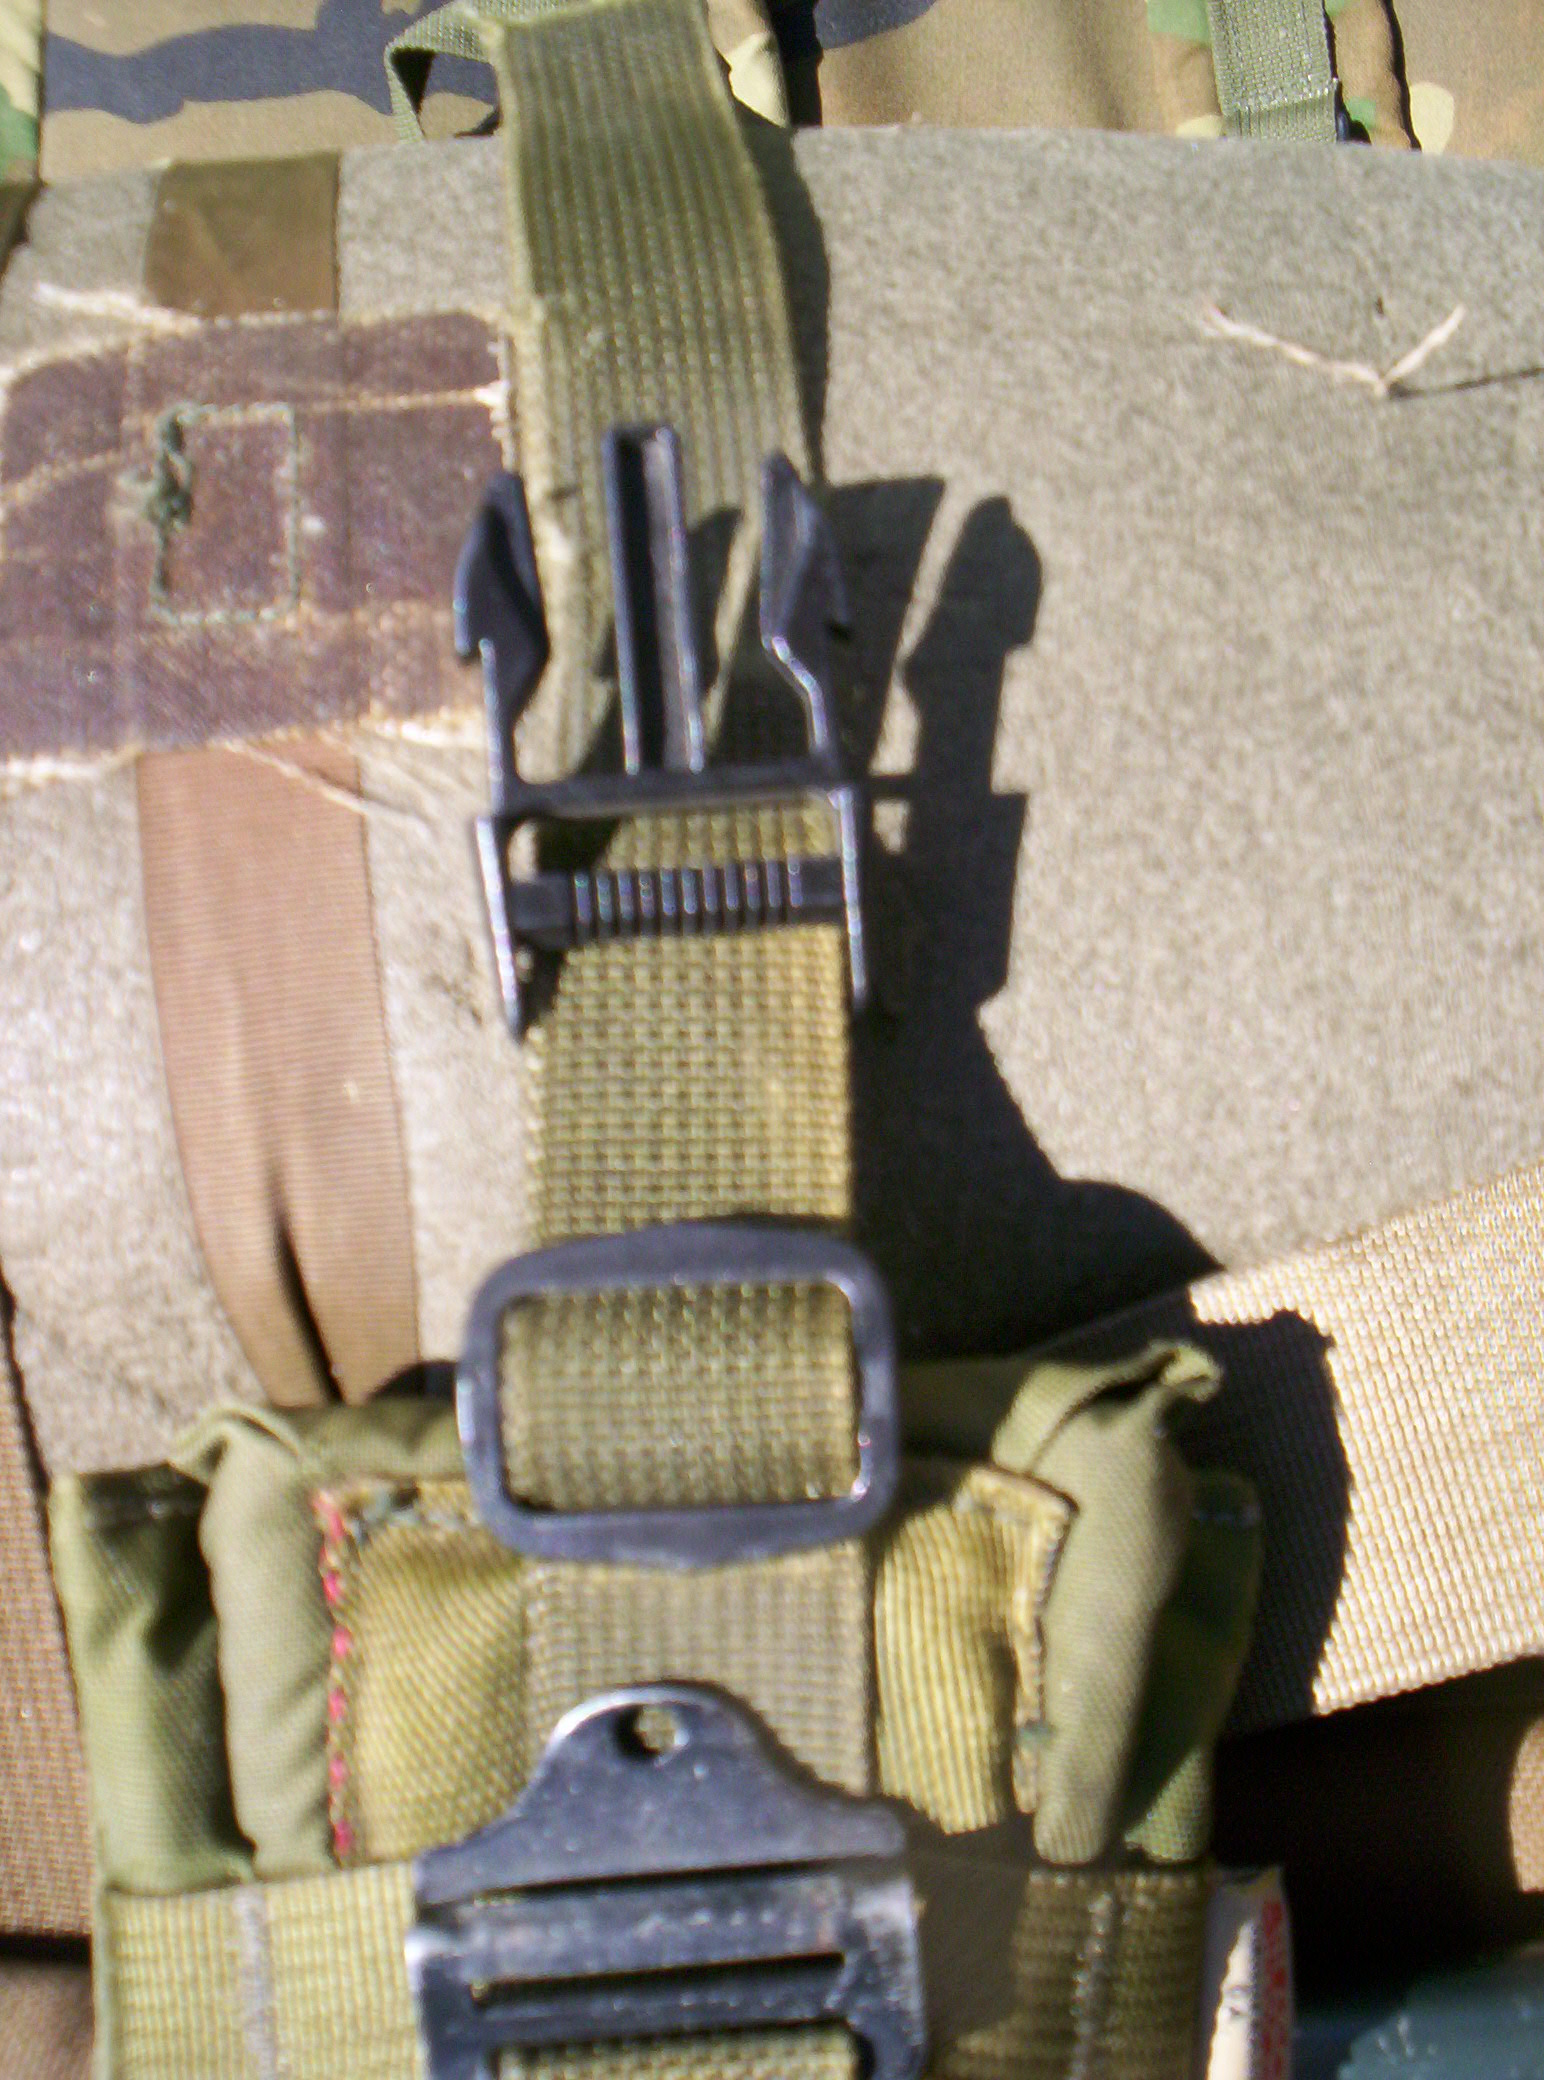 run the tip of the strap under the frame through the slot made for the shoulder strap and back around